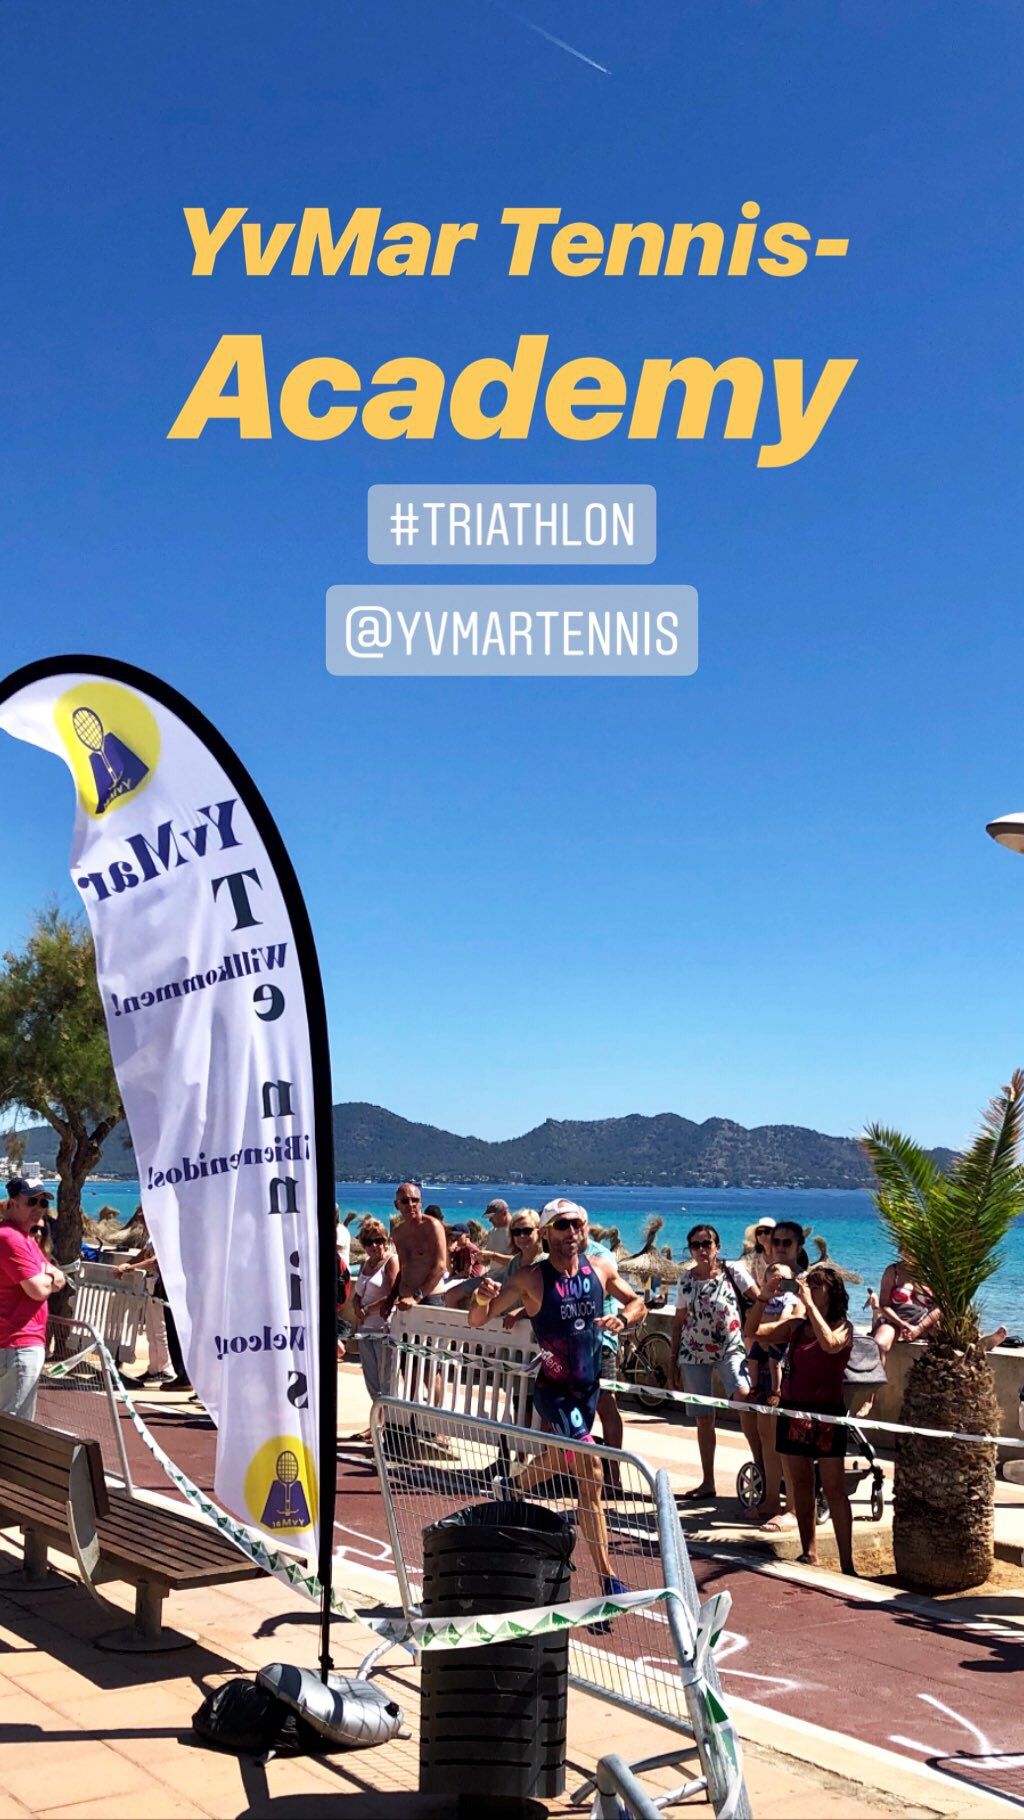 Sporting events by YVMAR SPORTS & EVENTS